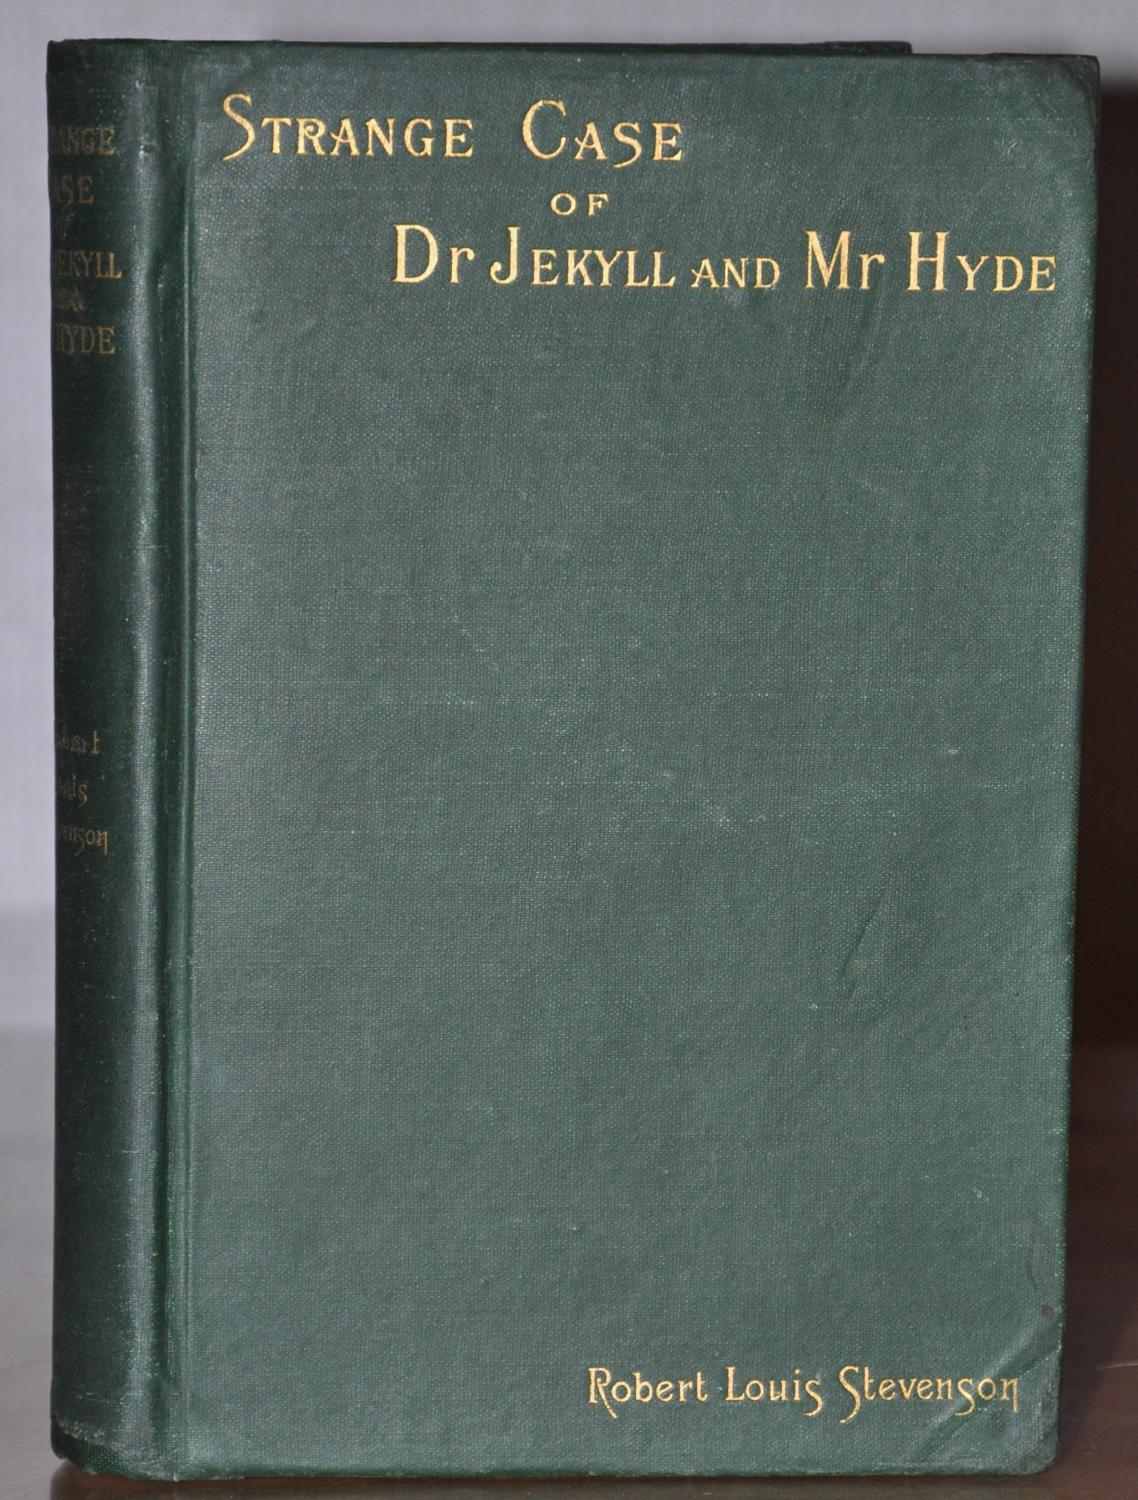 STRANGE CASE OF DR. JEKYLL AND MR. HYDE by Robert Louis